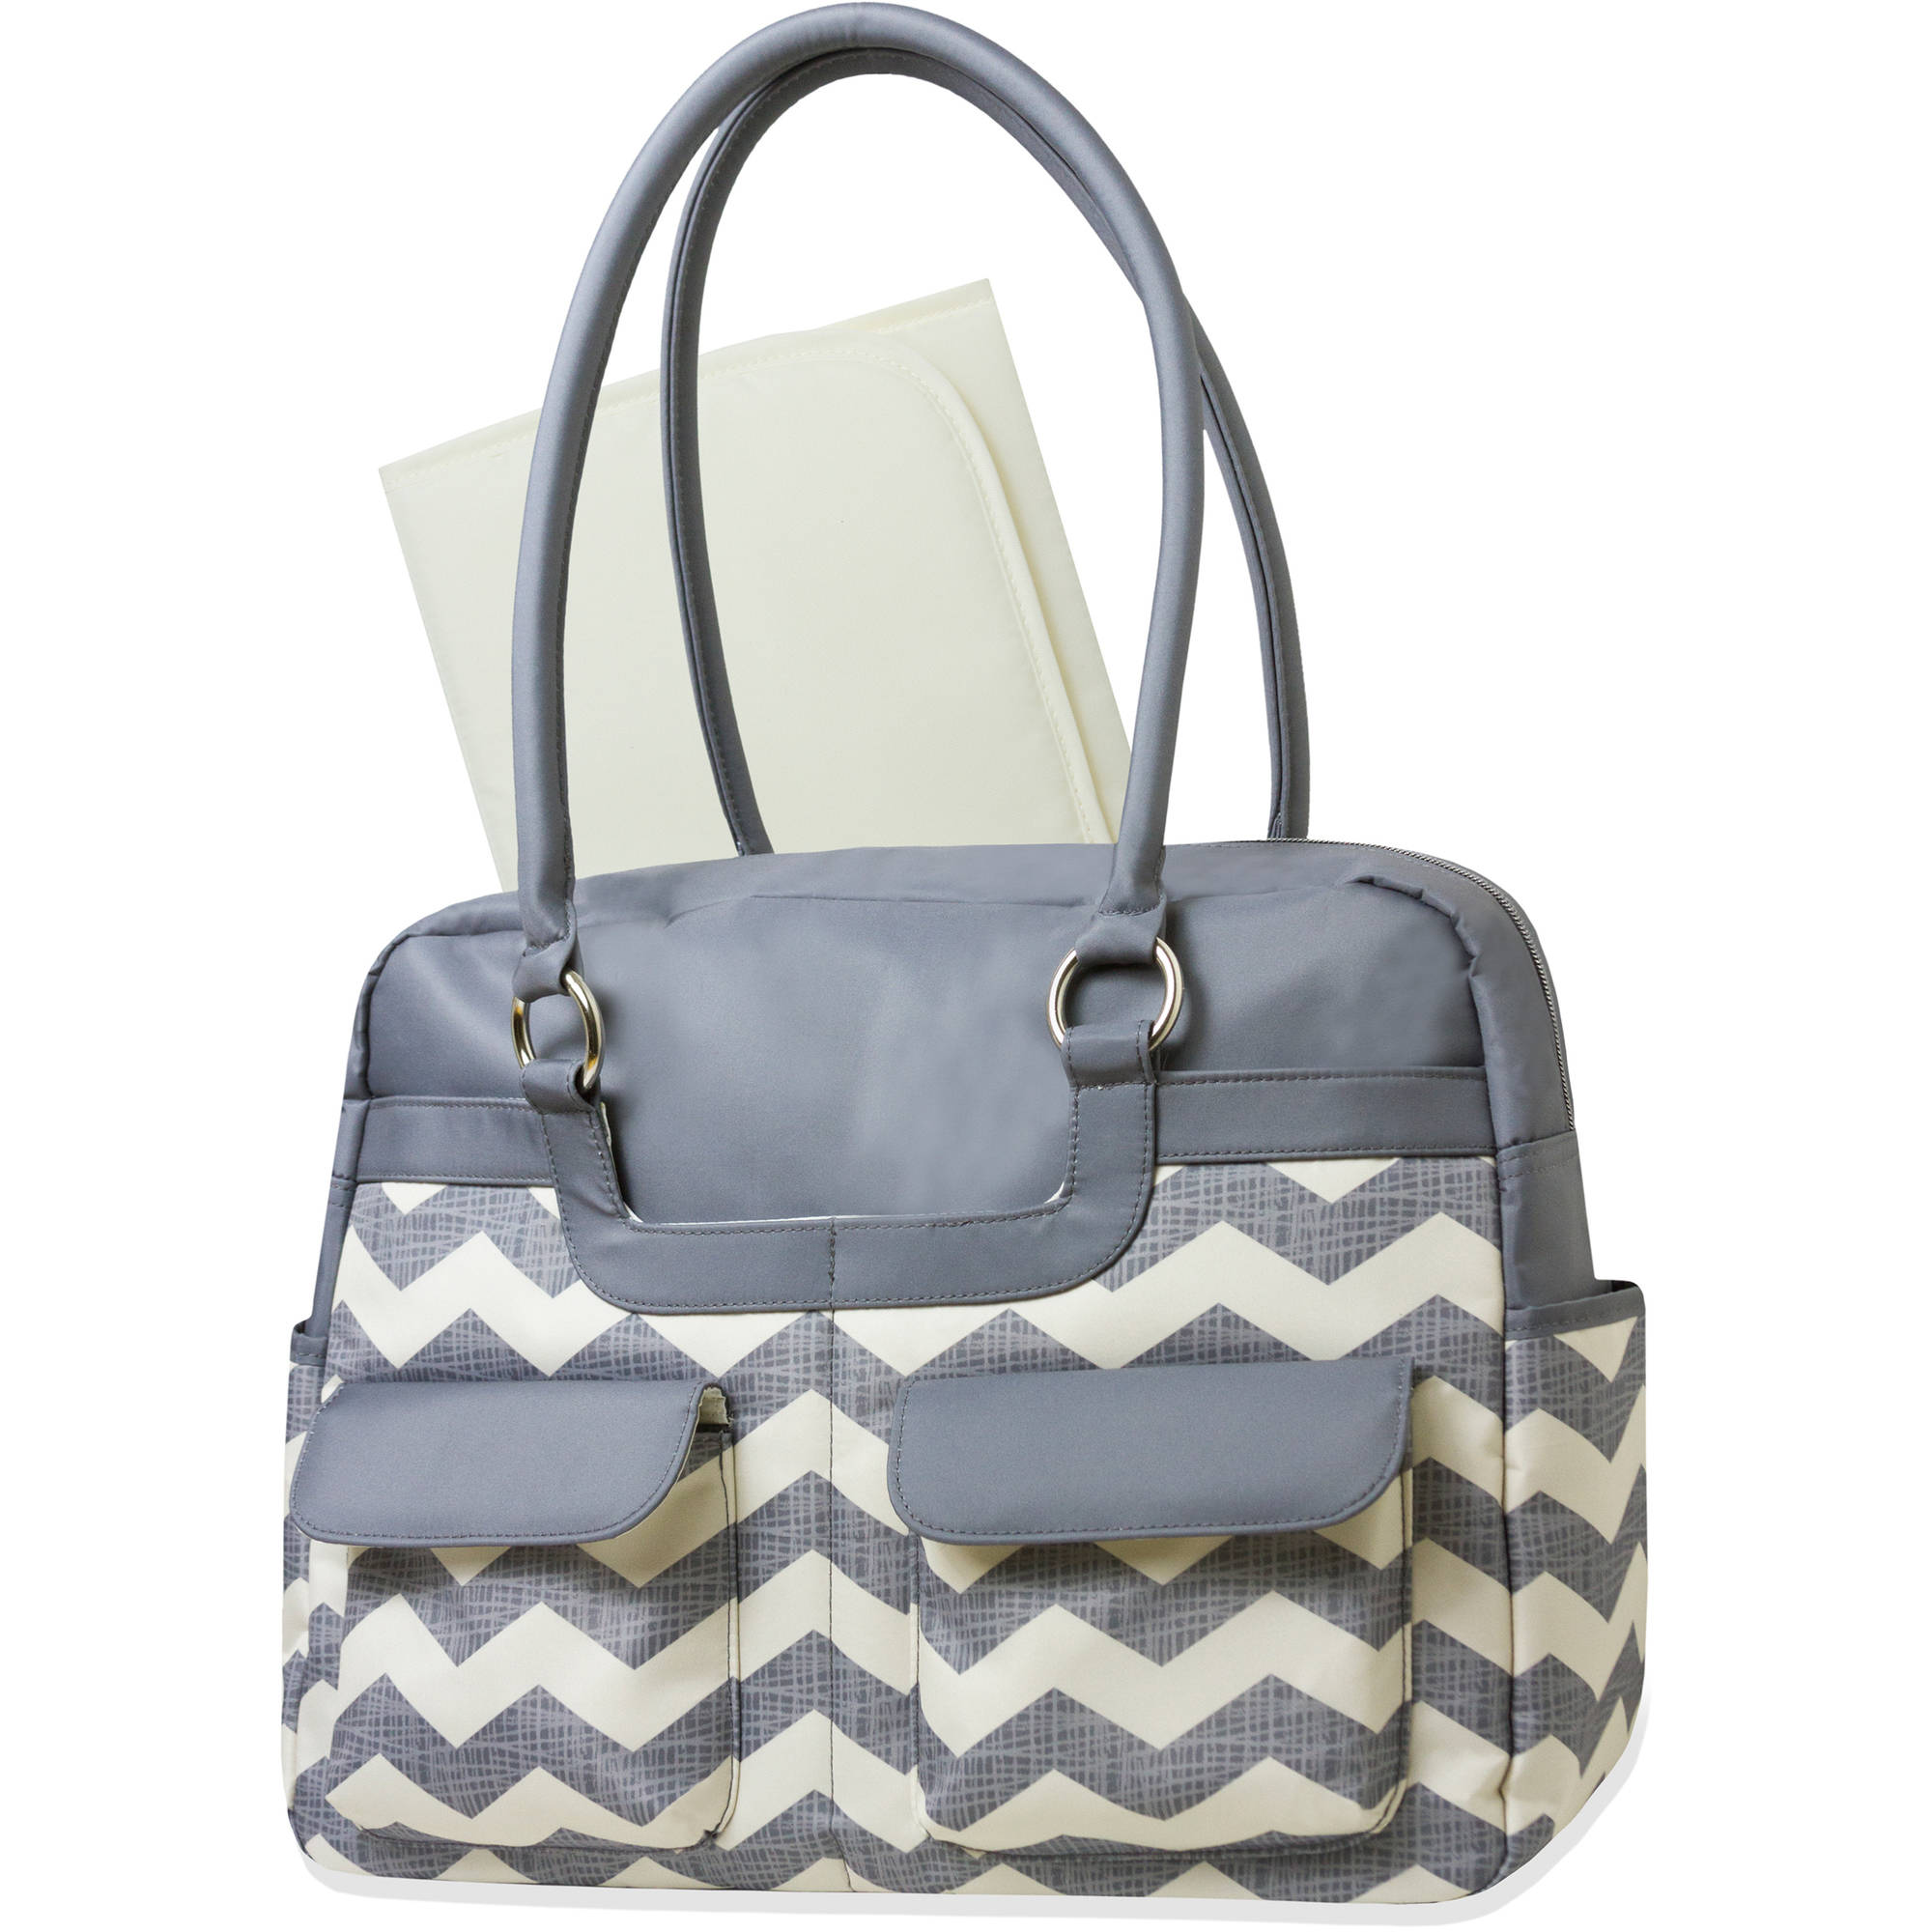 Baby Essentials Chevron Microfiber Diaper Bag, 2-Piece Set